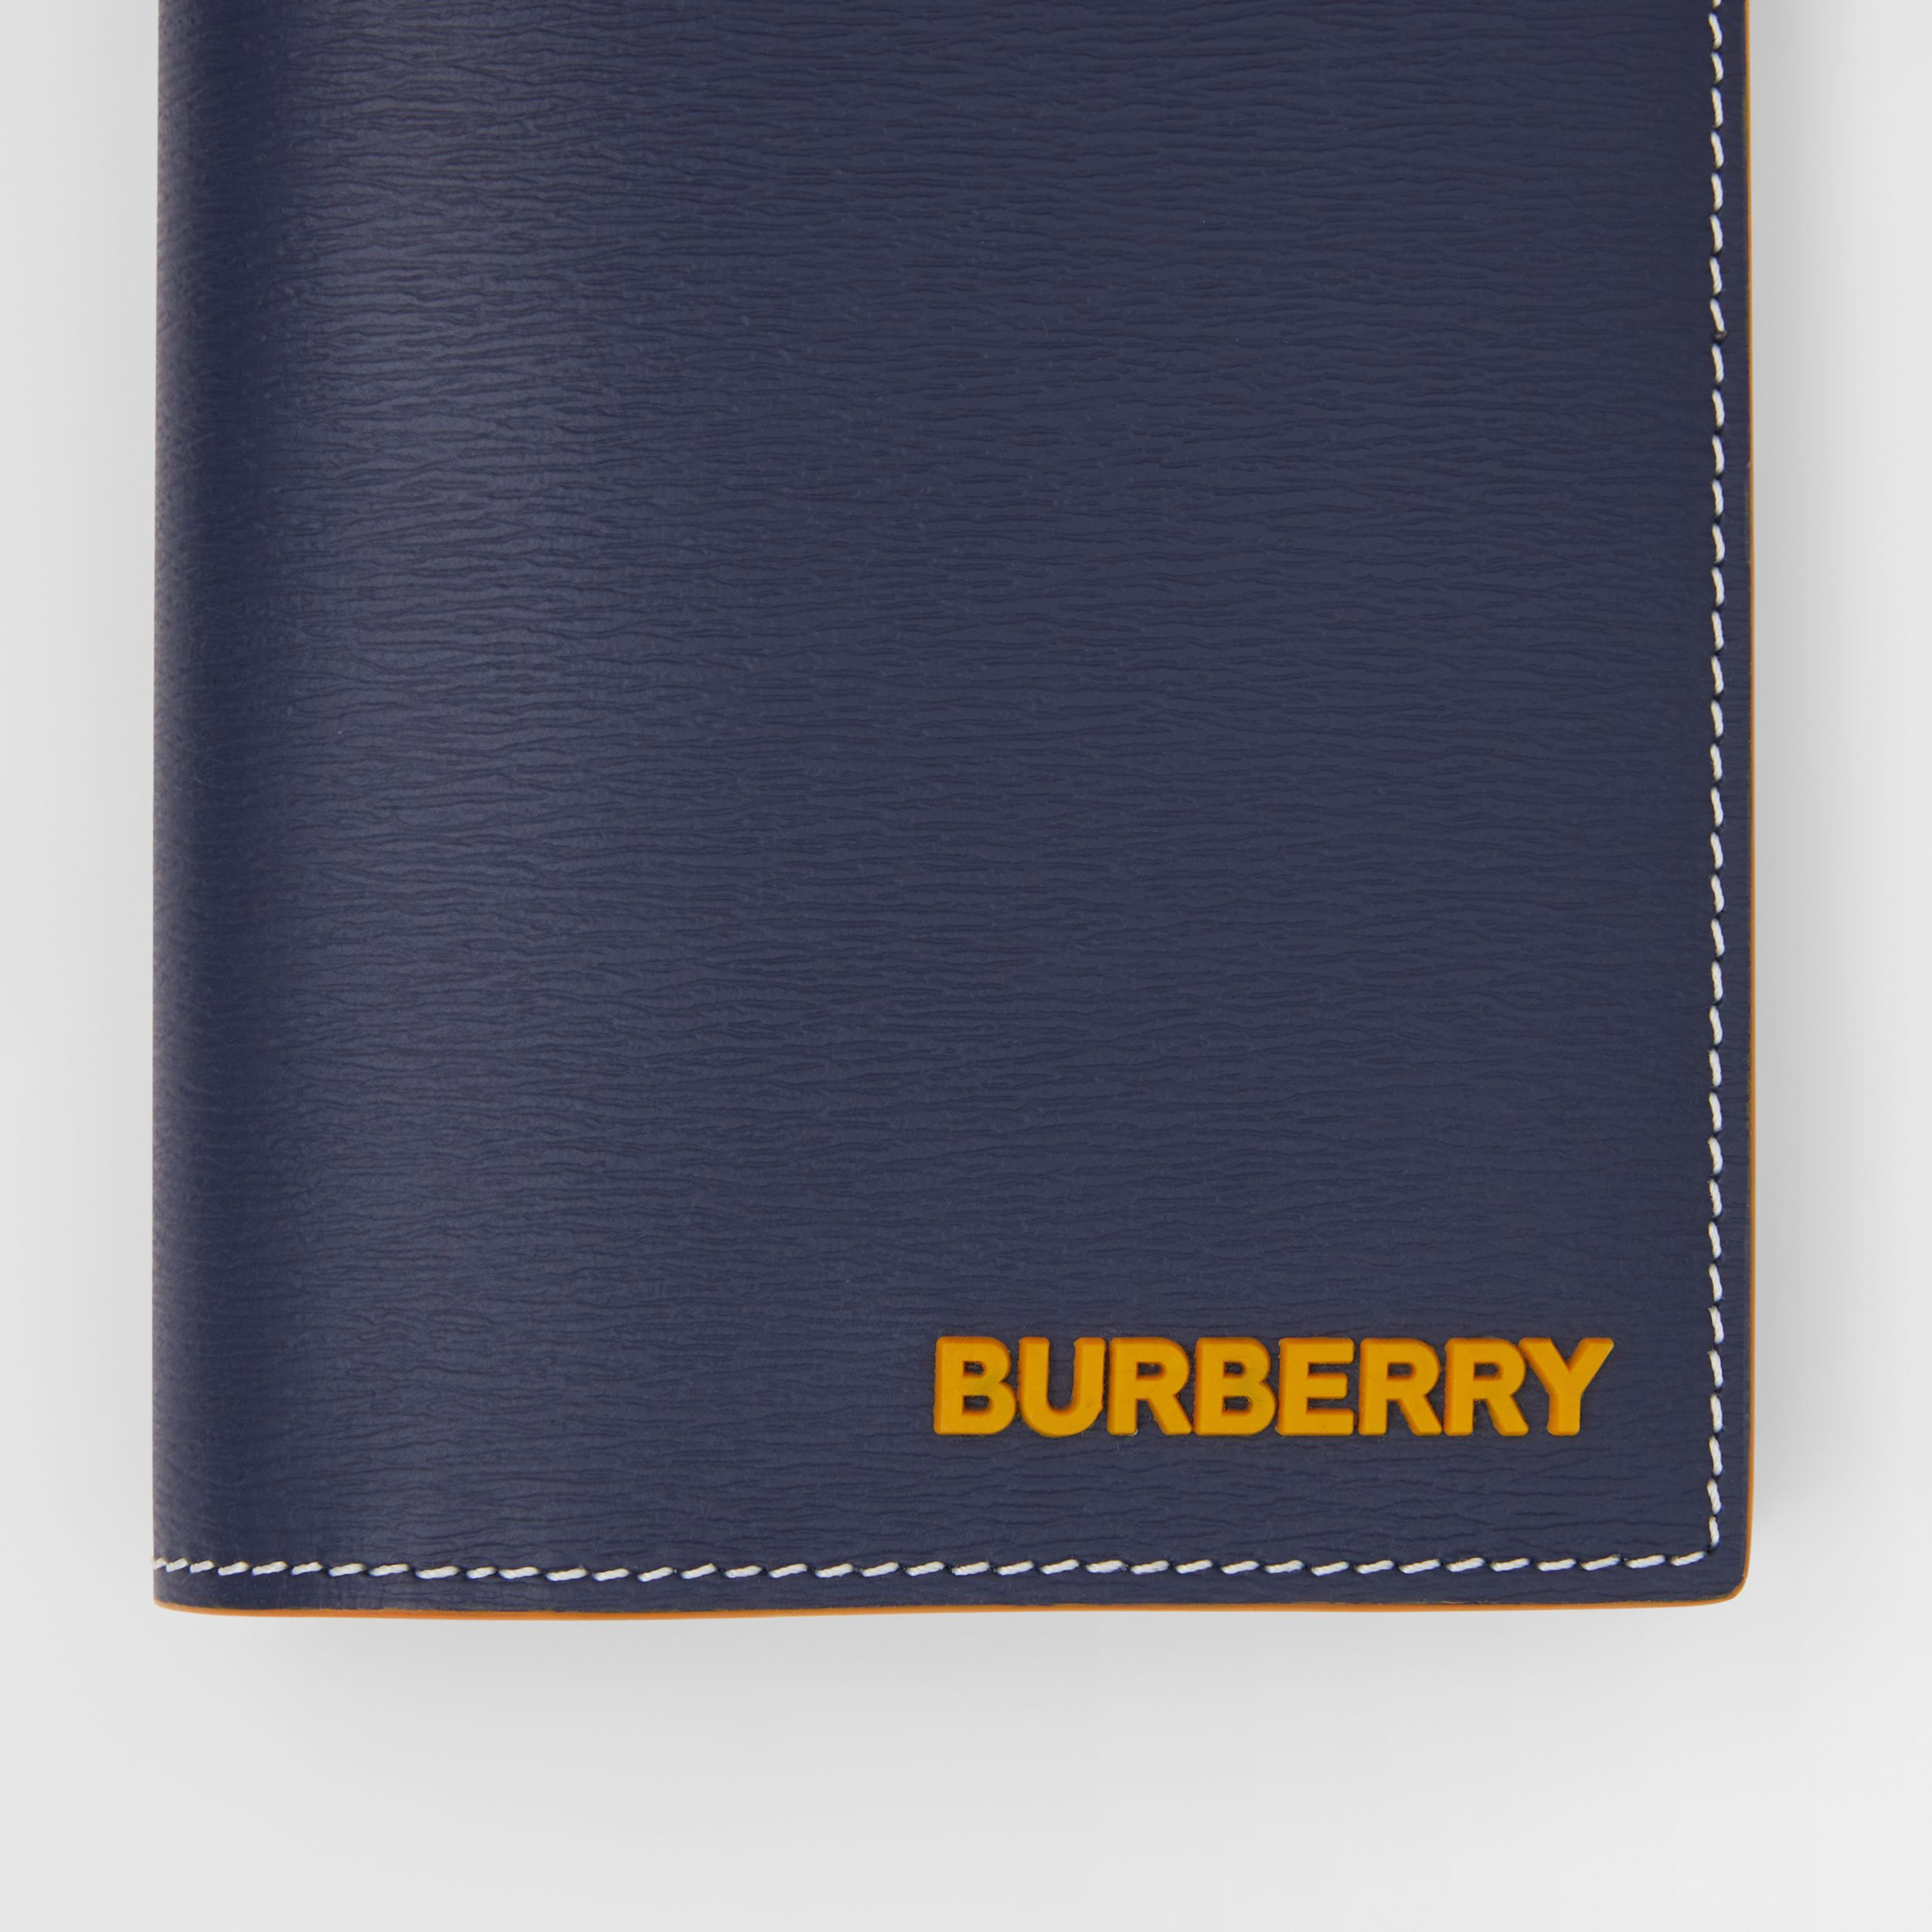 Topstitched Grainy Leather Continental Wallet in Navy - Men | Burberry - 2